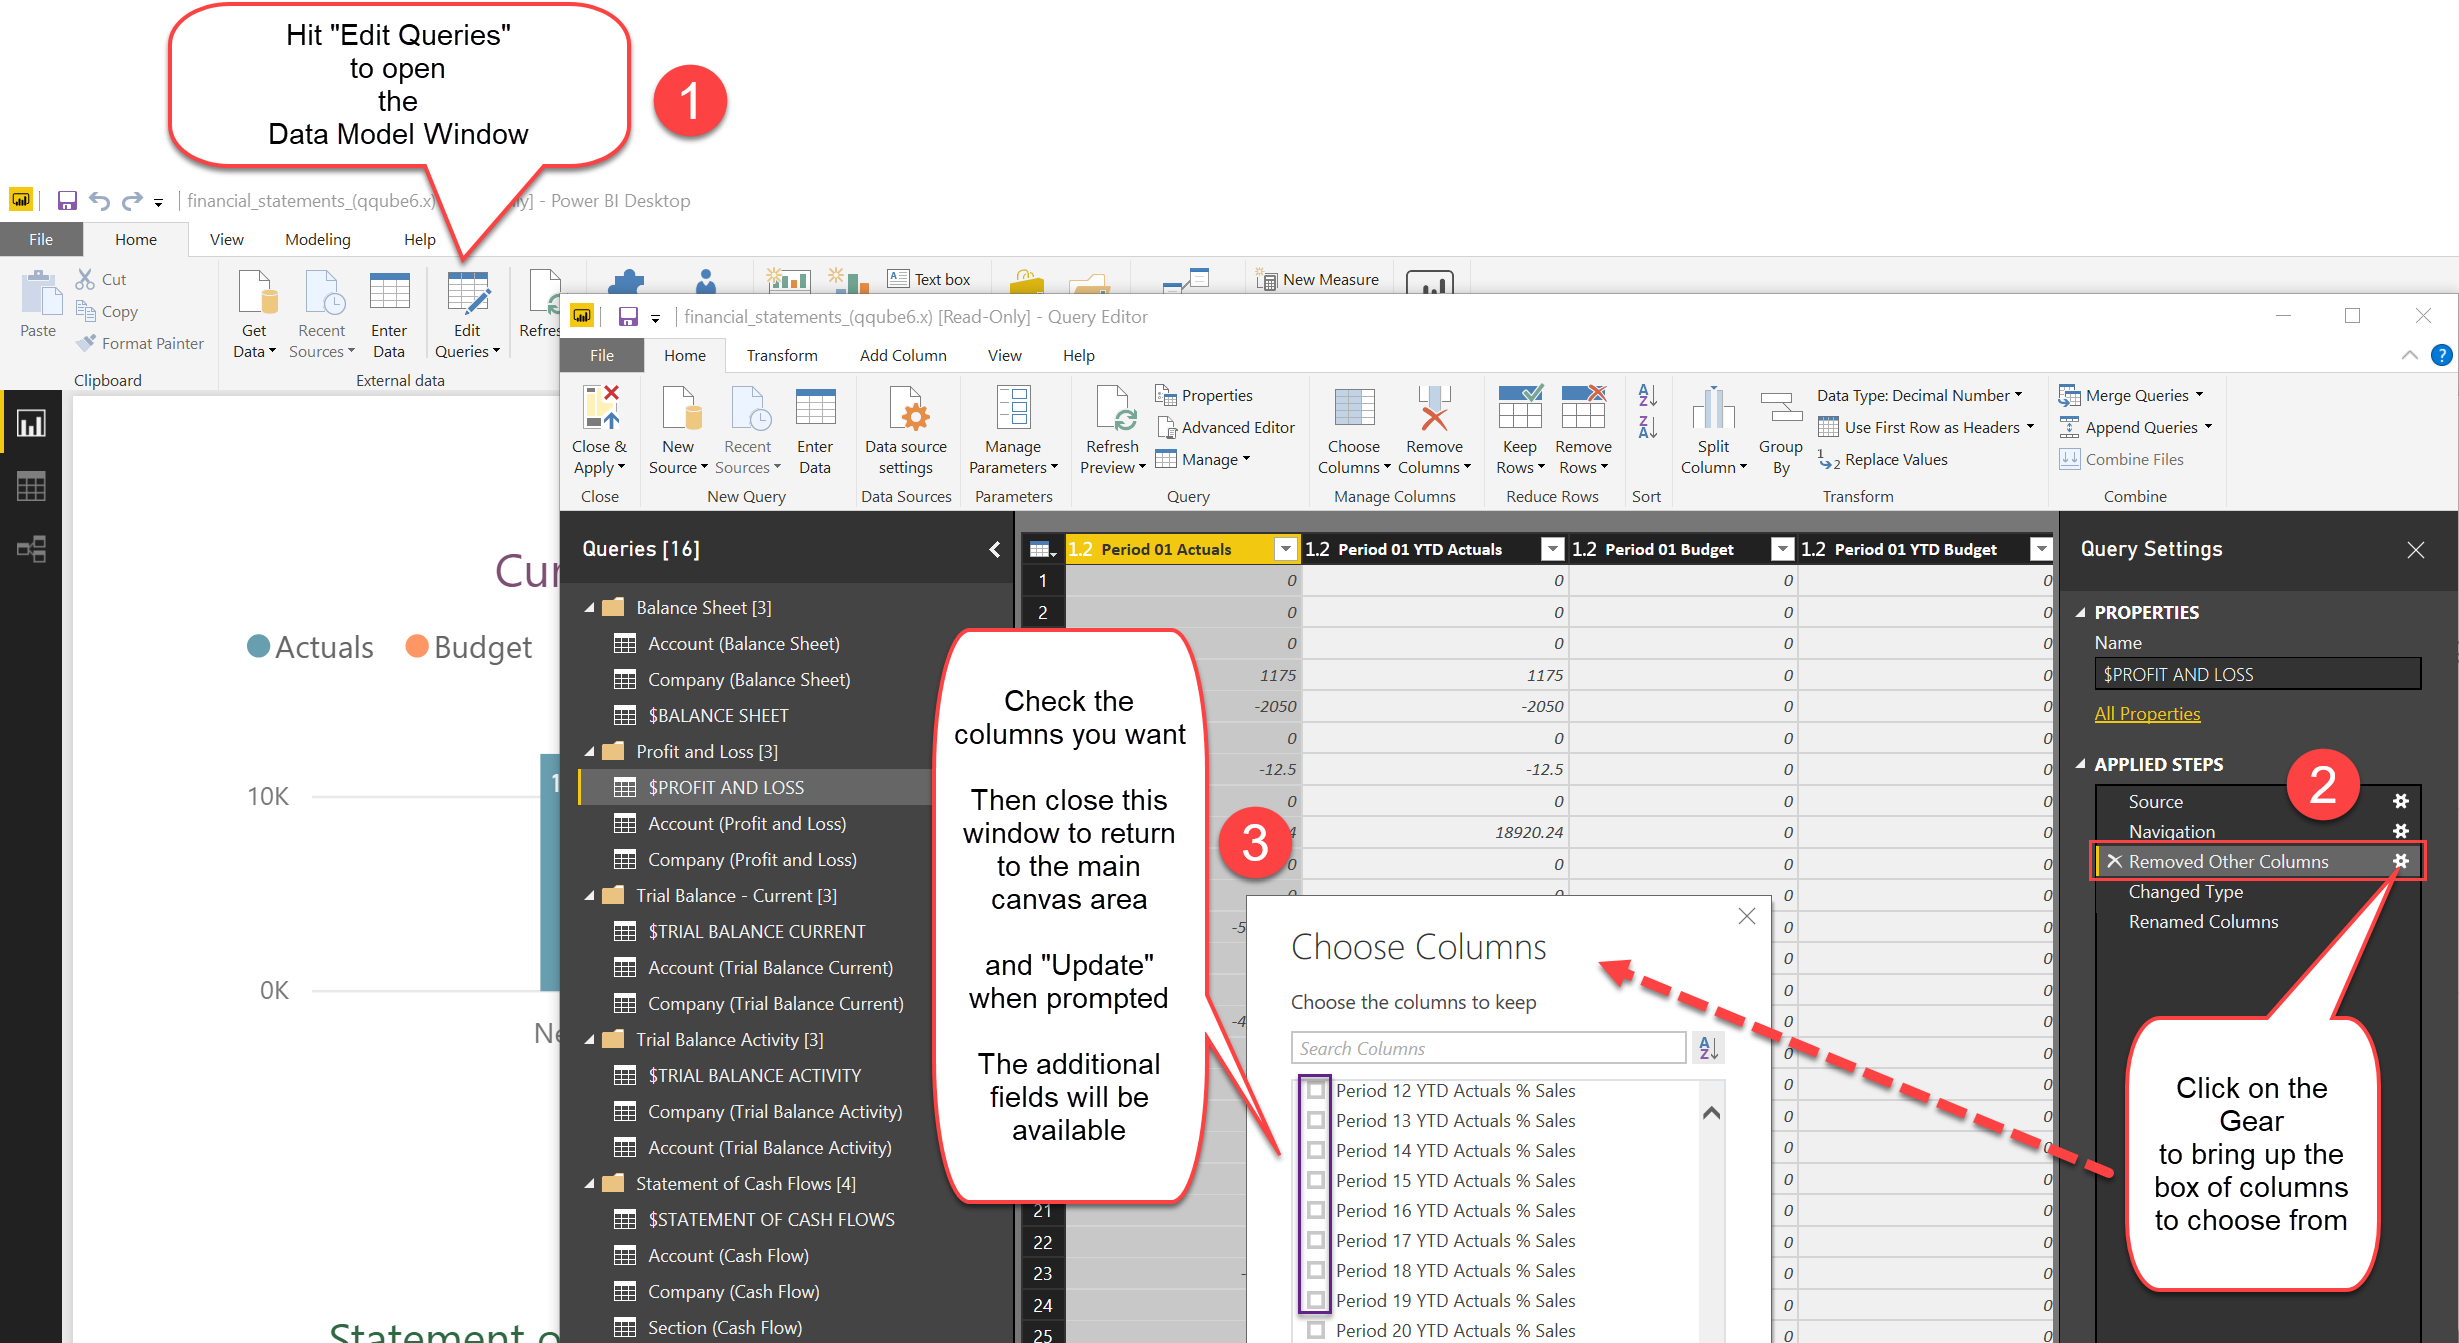 Choosing additional QQube Columns for Power BI